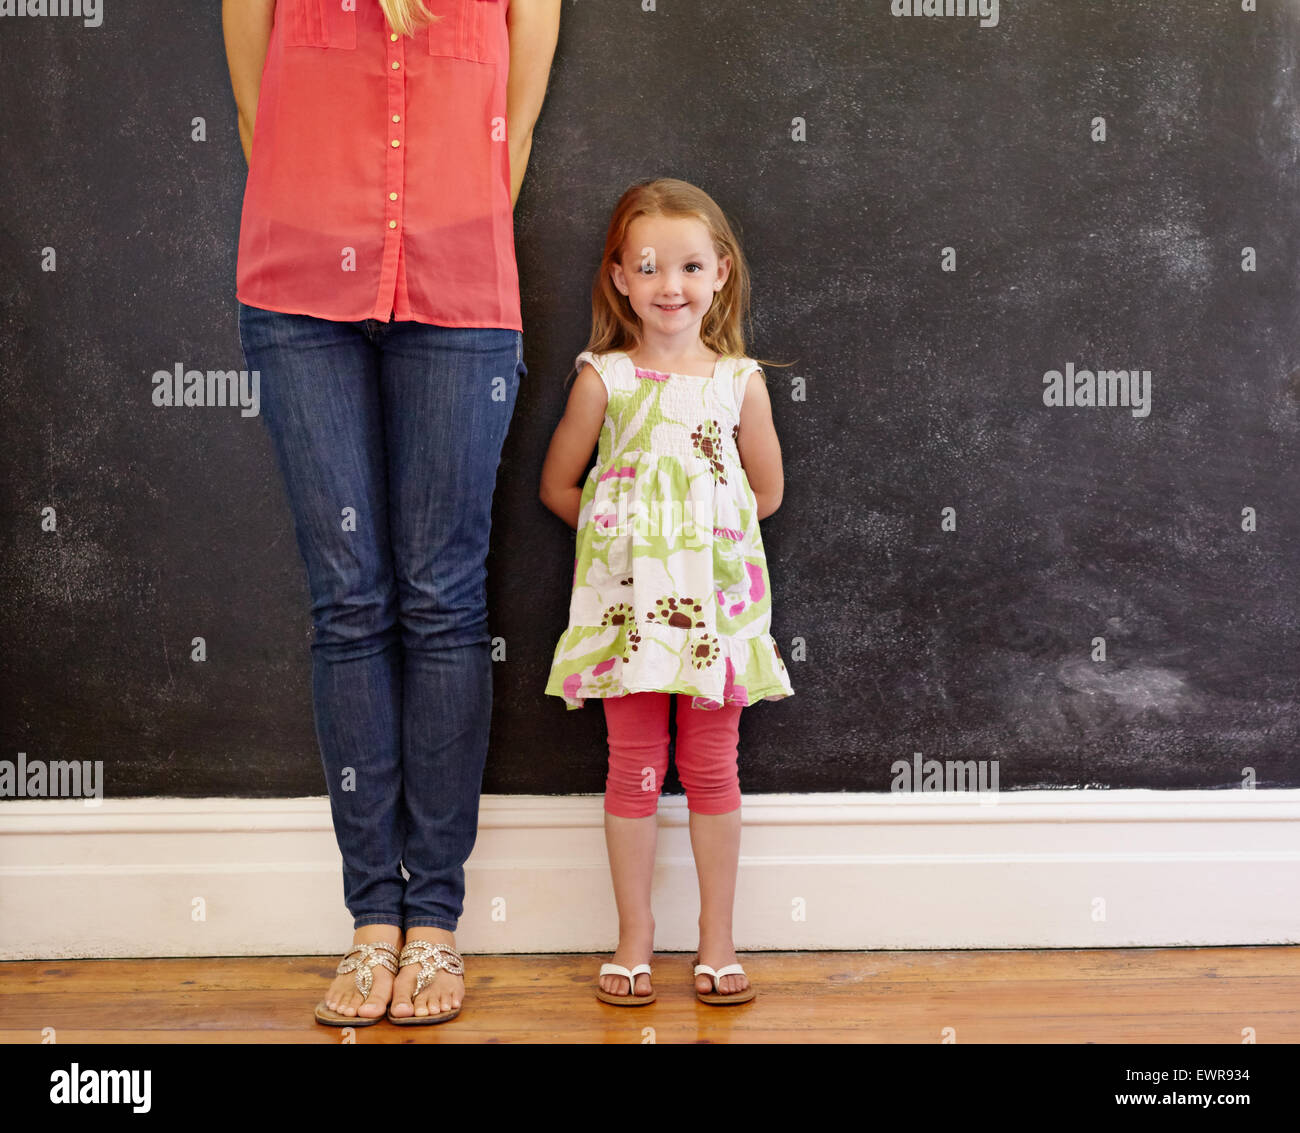 Little girl with sweet smile standing with her mother. Mother is cropped in the picture with focus on little girl - Stock Image